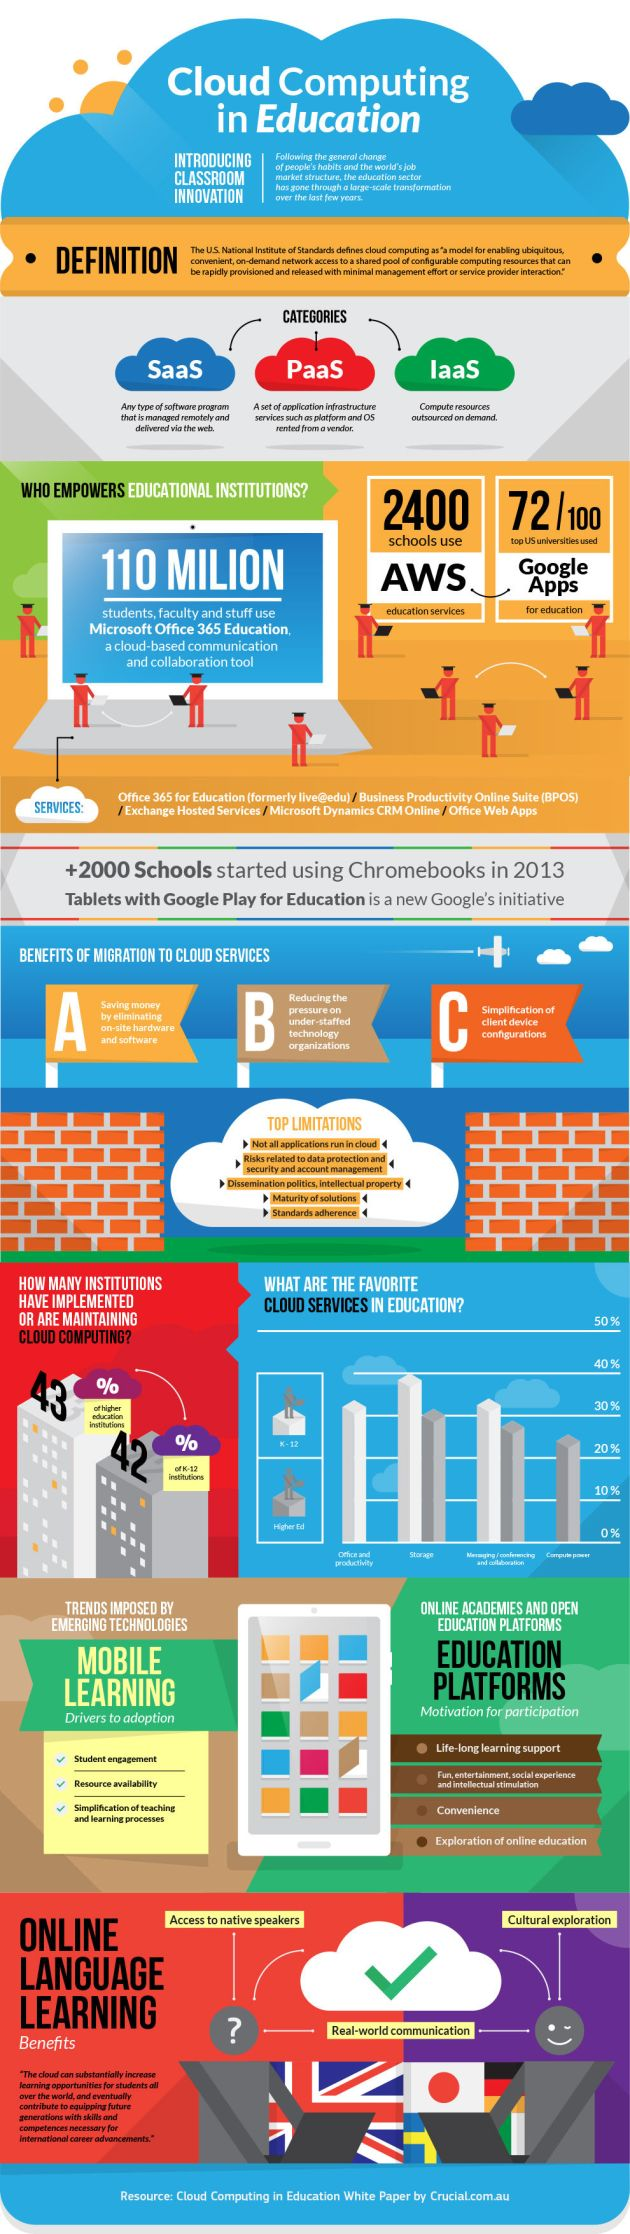 Cloud-Computing-in-Education-Infographic